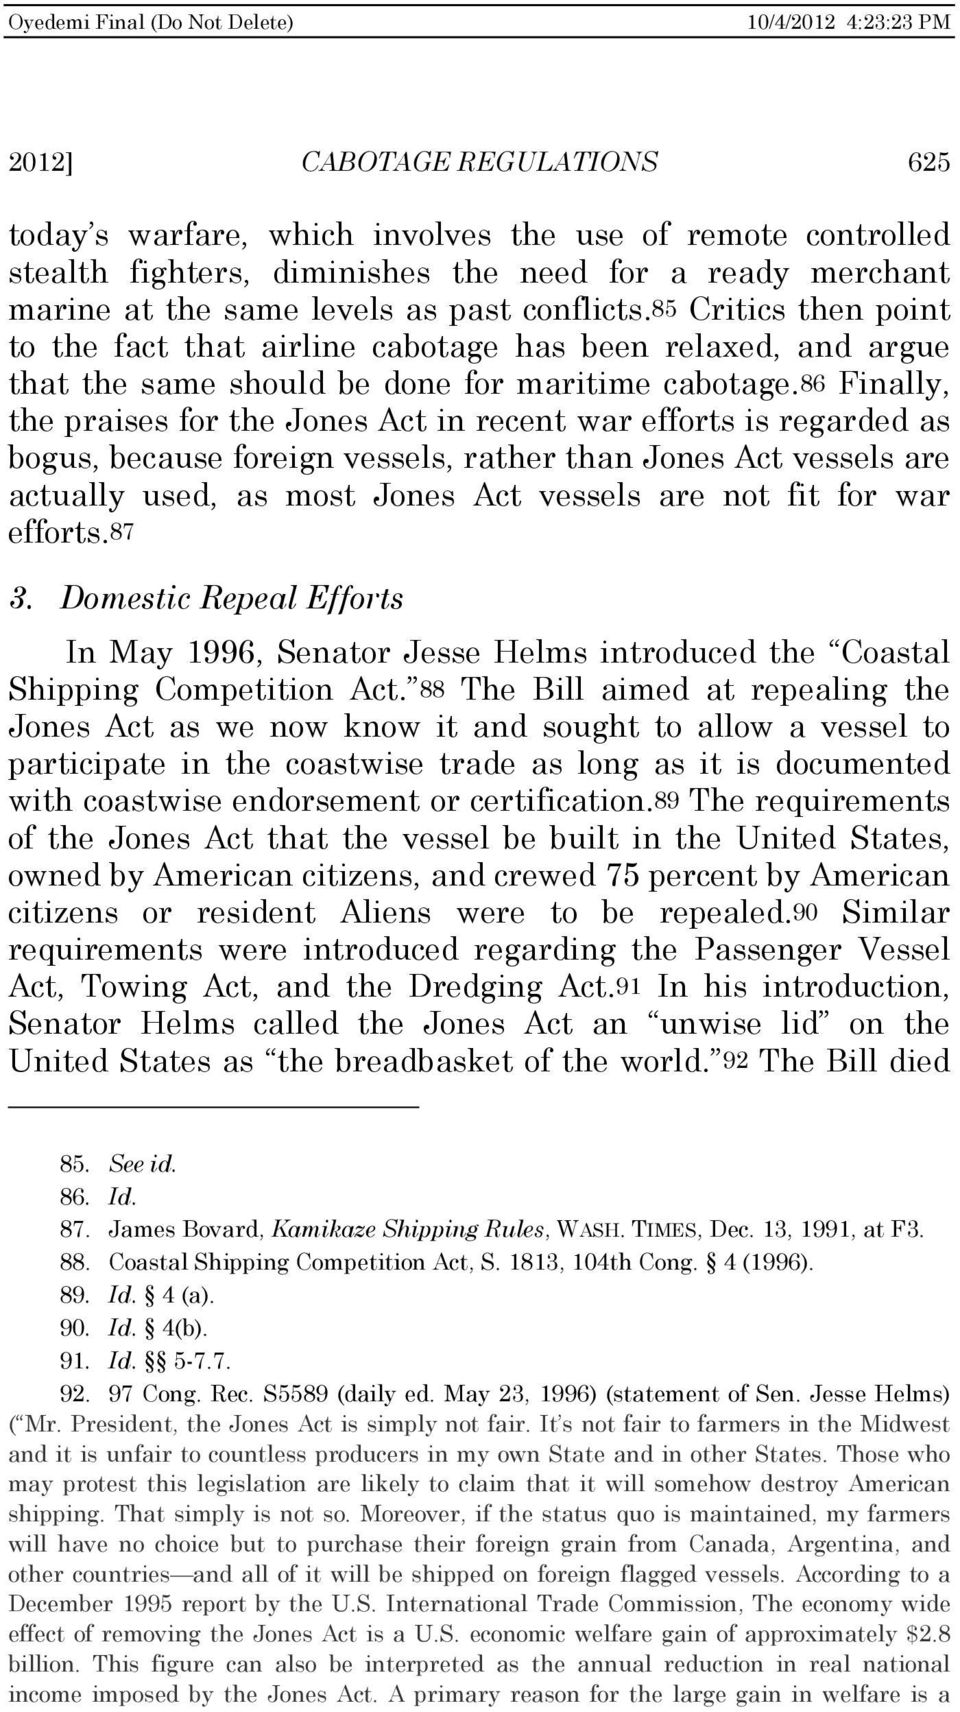 86 Finally, the praises for the Jones Act in recent war efforts is regarded as bogus, because foreign vessels, rather than Jones Act vessels are actually used, as most Jones Act vessels are not fit